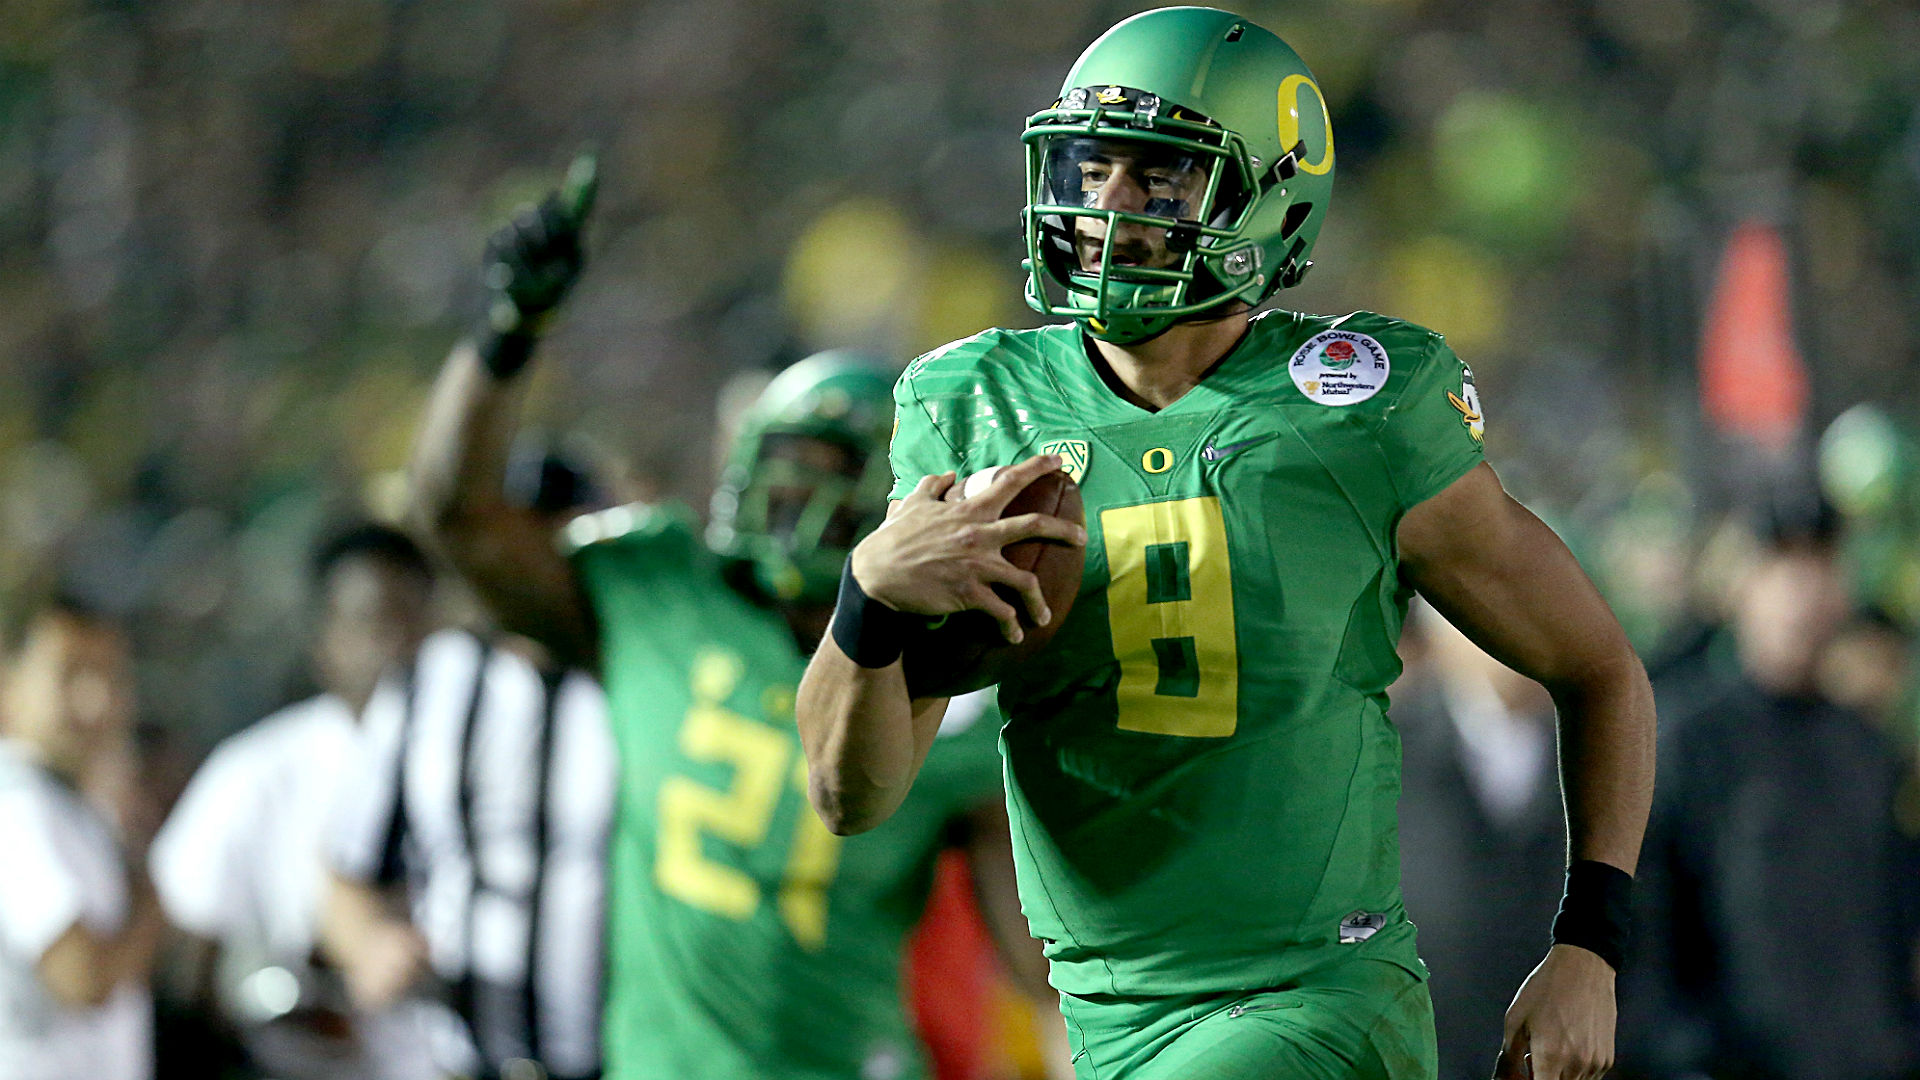 Oregon opens as touchdown favorites over Ohio State in national championship